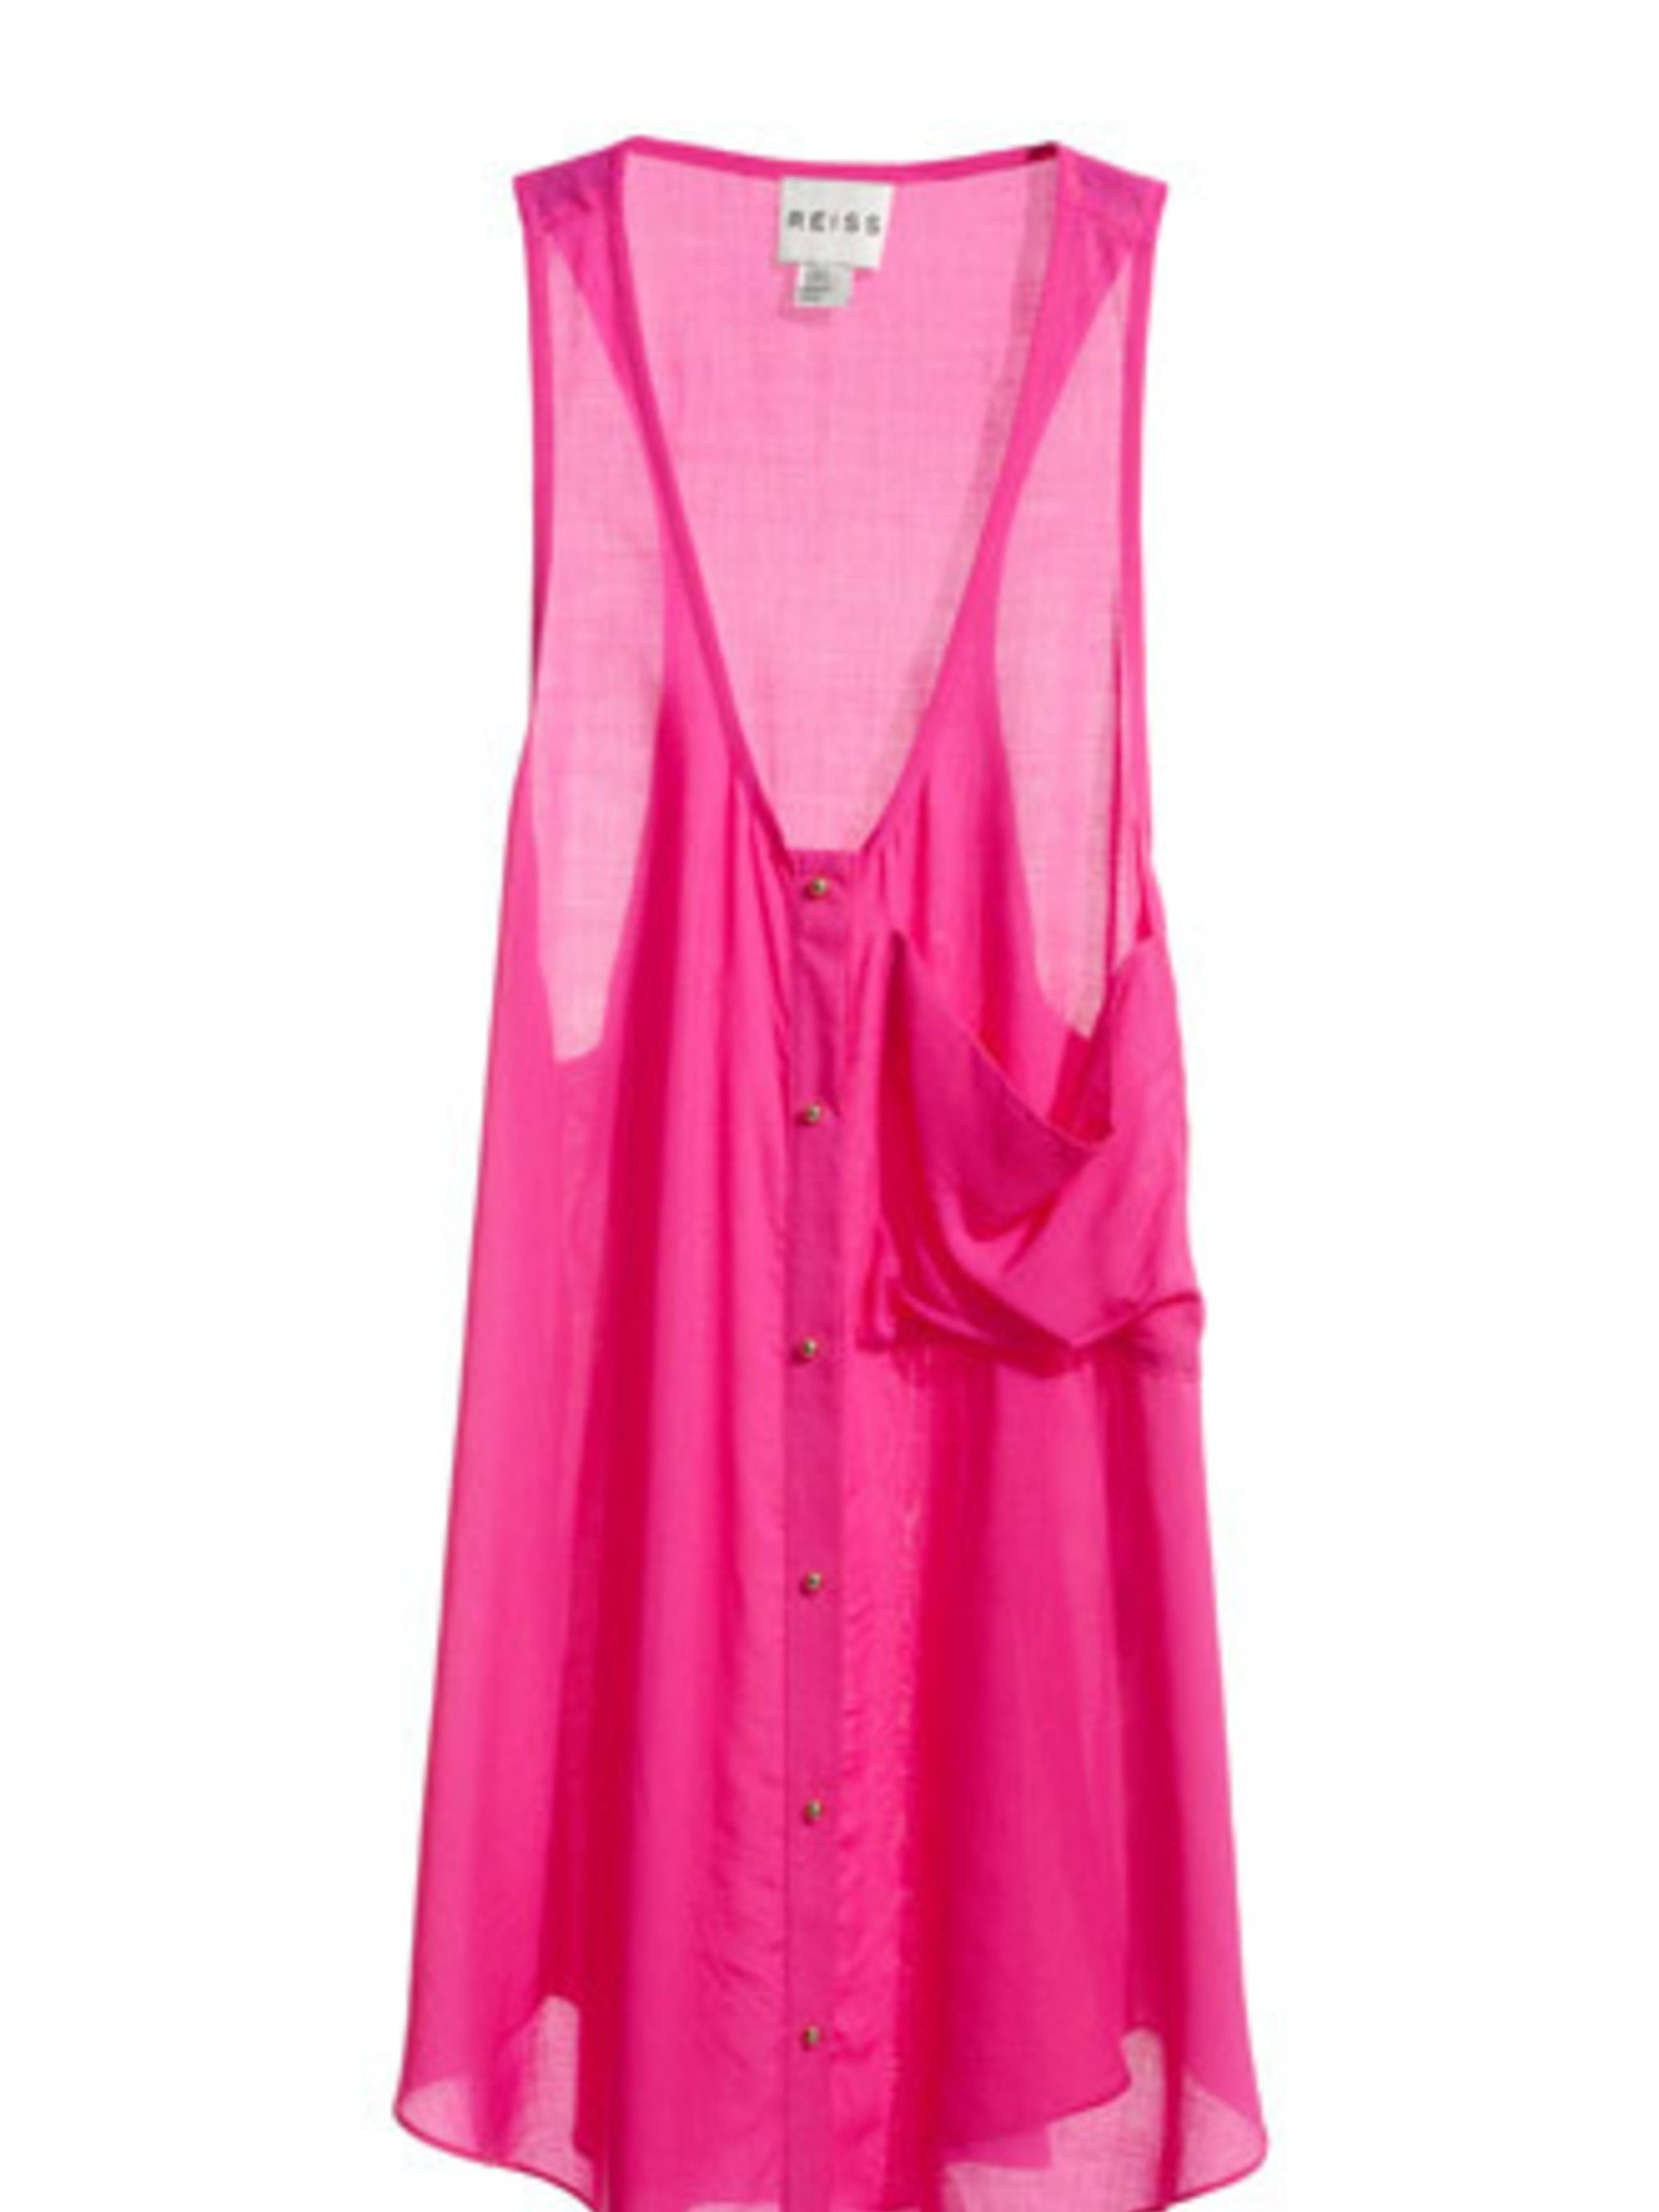 """<p>A hot pink vest is perfect for lazy days by the sea or chilling at a festival. It will also look great under a thick grey cardigan and jeans come autumn too.</p><p>Vest, £85 by <a href=""""http://www.reiss.co.uk/shop/womens/womens_new_arrivals/jasmin/elec"""